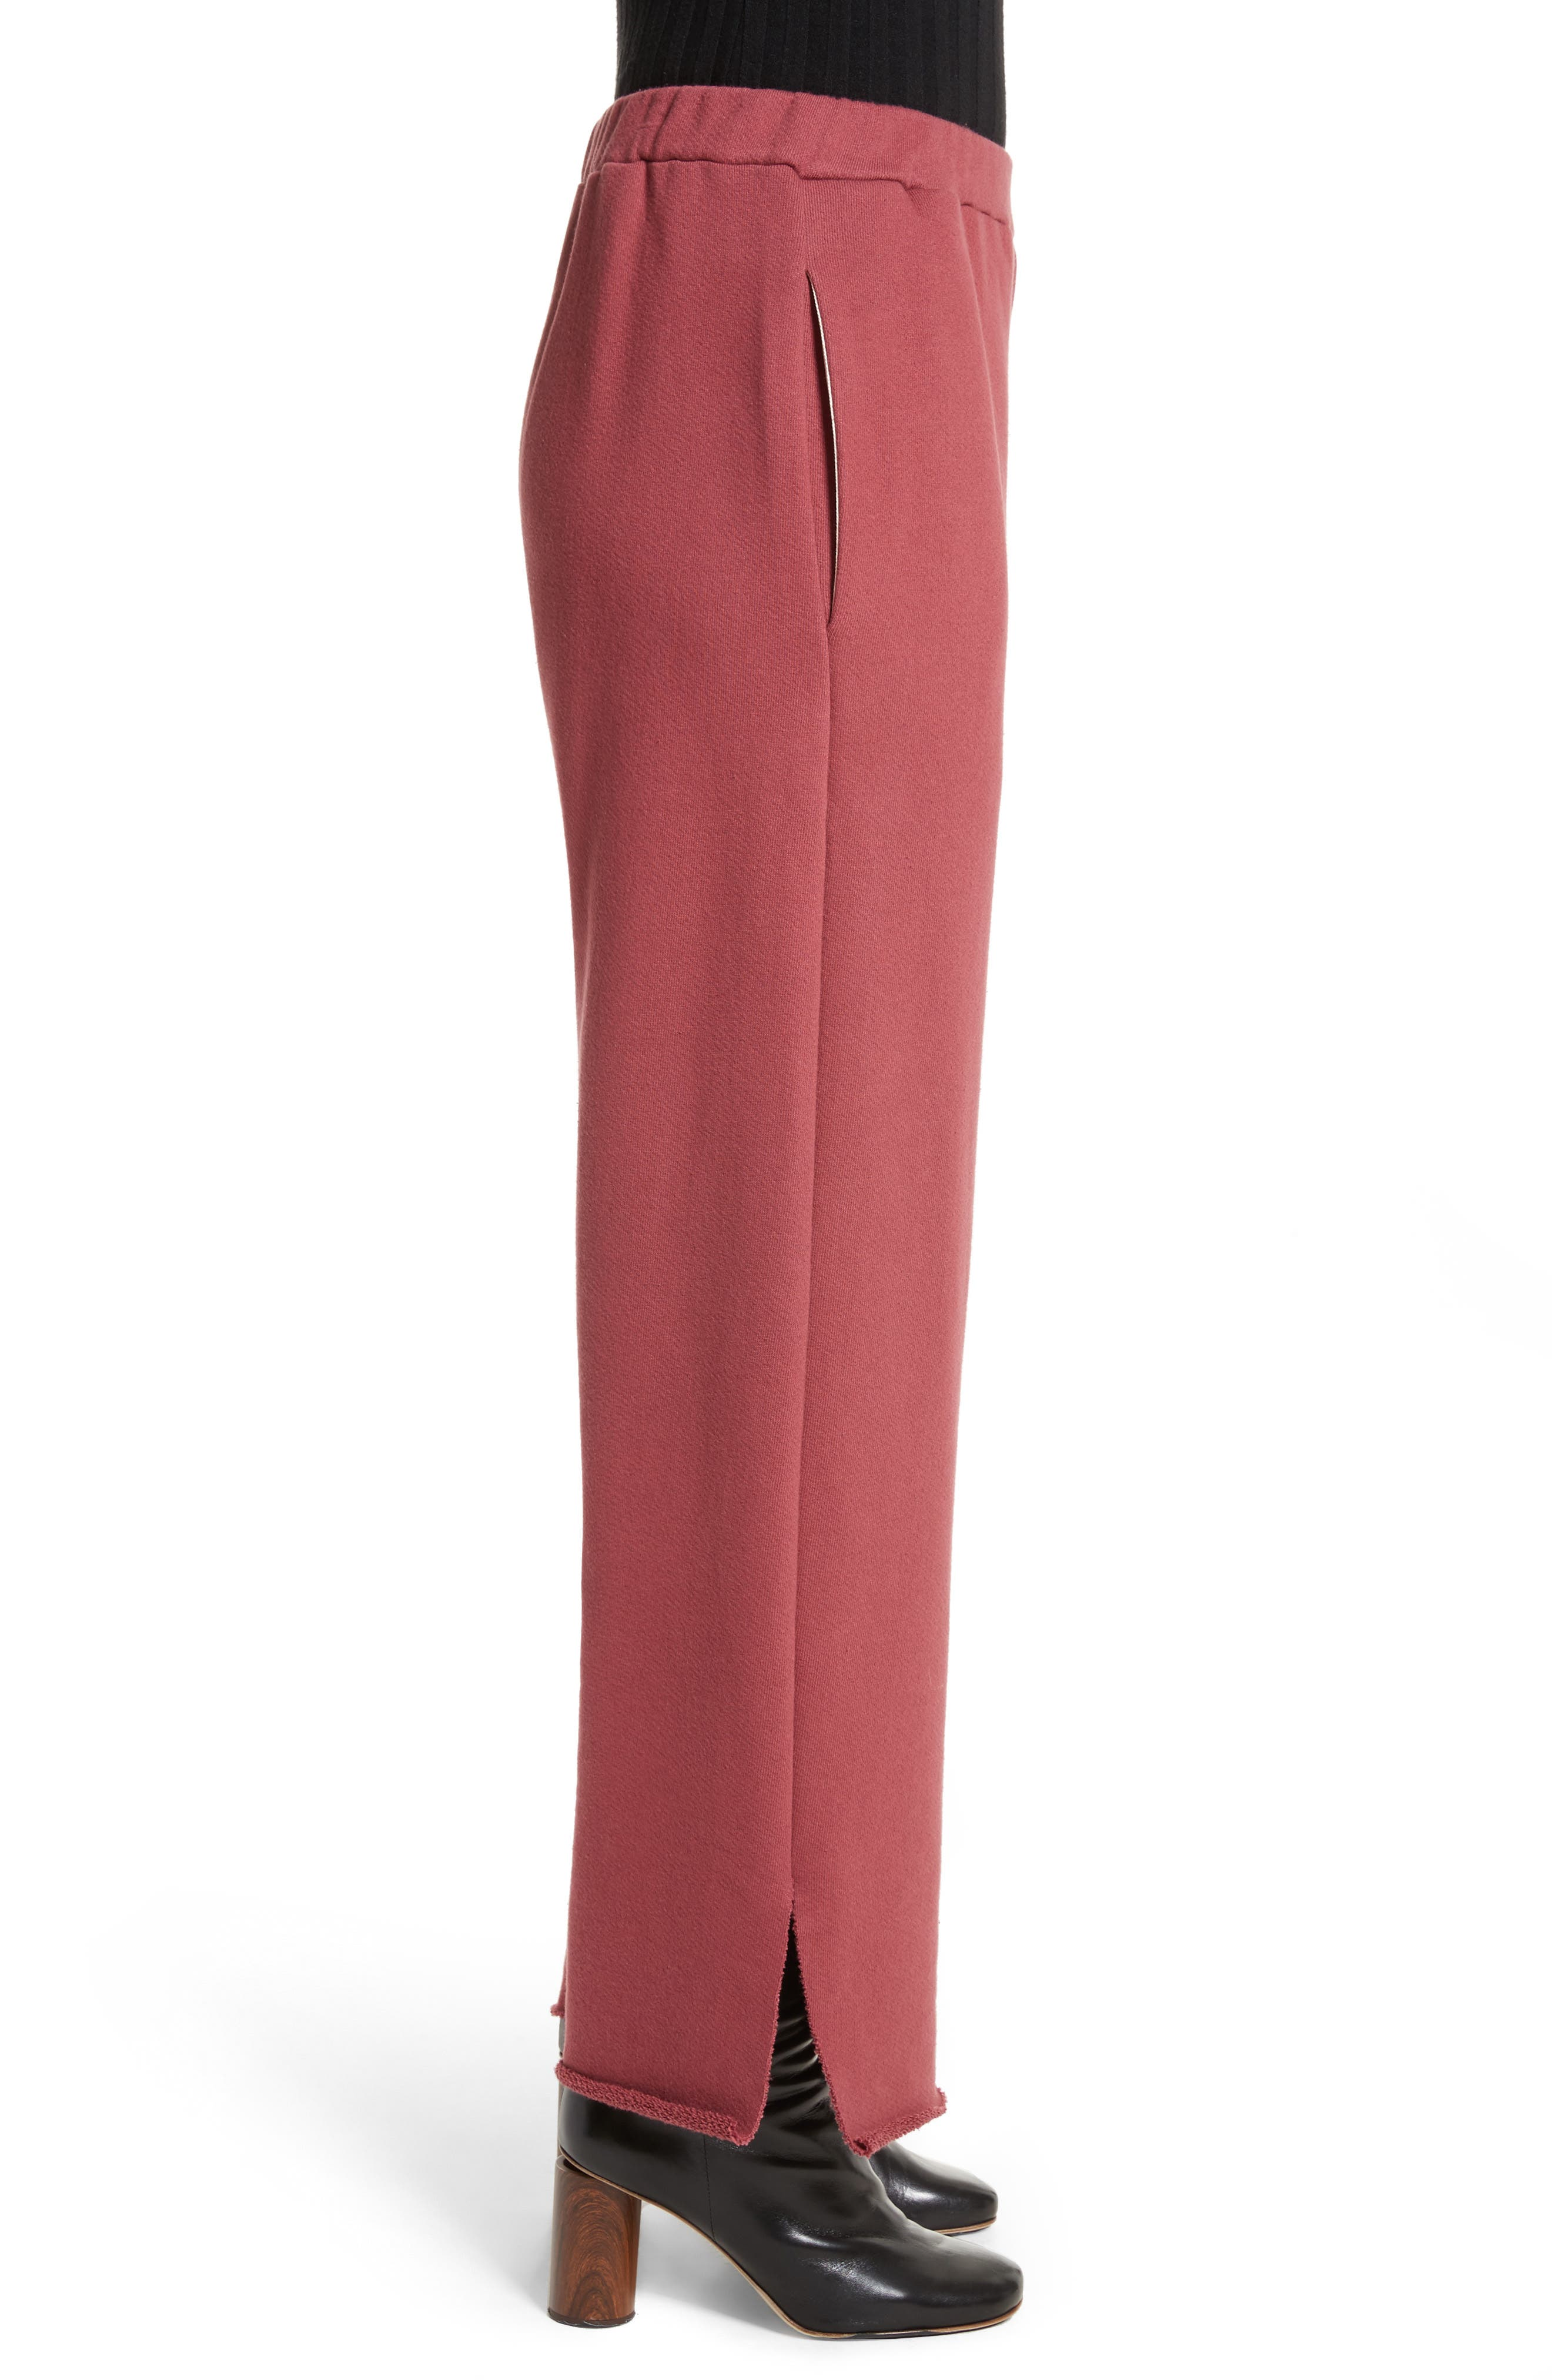 Canal French Terry Sweatpants,                             Alternate thumbnail 5, color,                             Tegola Pink